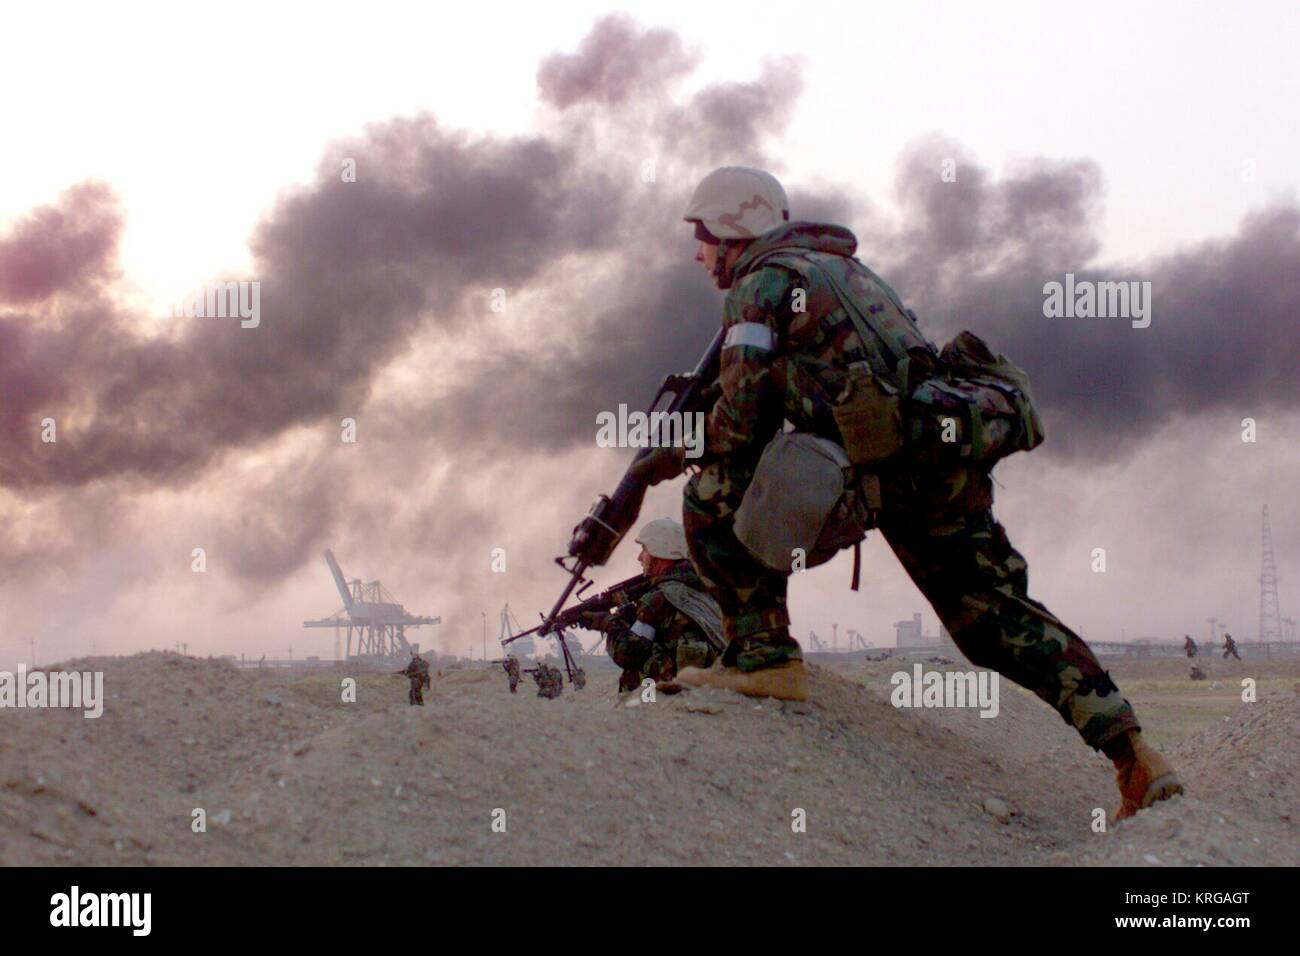 A U.S. Marine soldier sprints over foothills and trenches during Operation Iraqi Freedom March 23, 2003 in Az Zubayr, - Stock Image